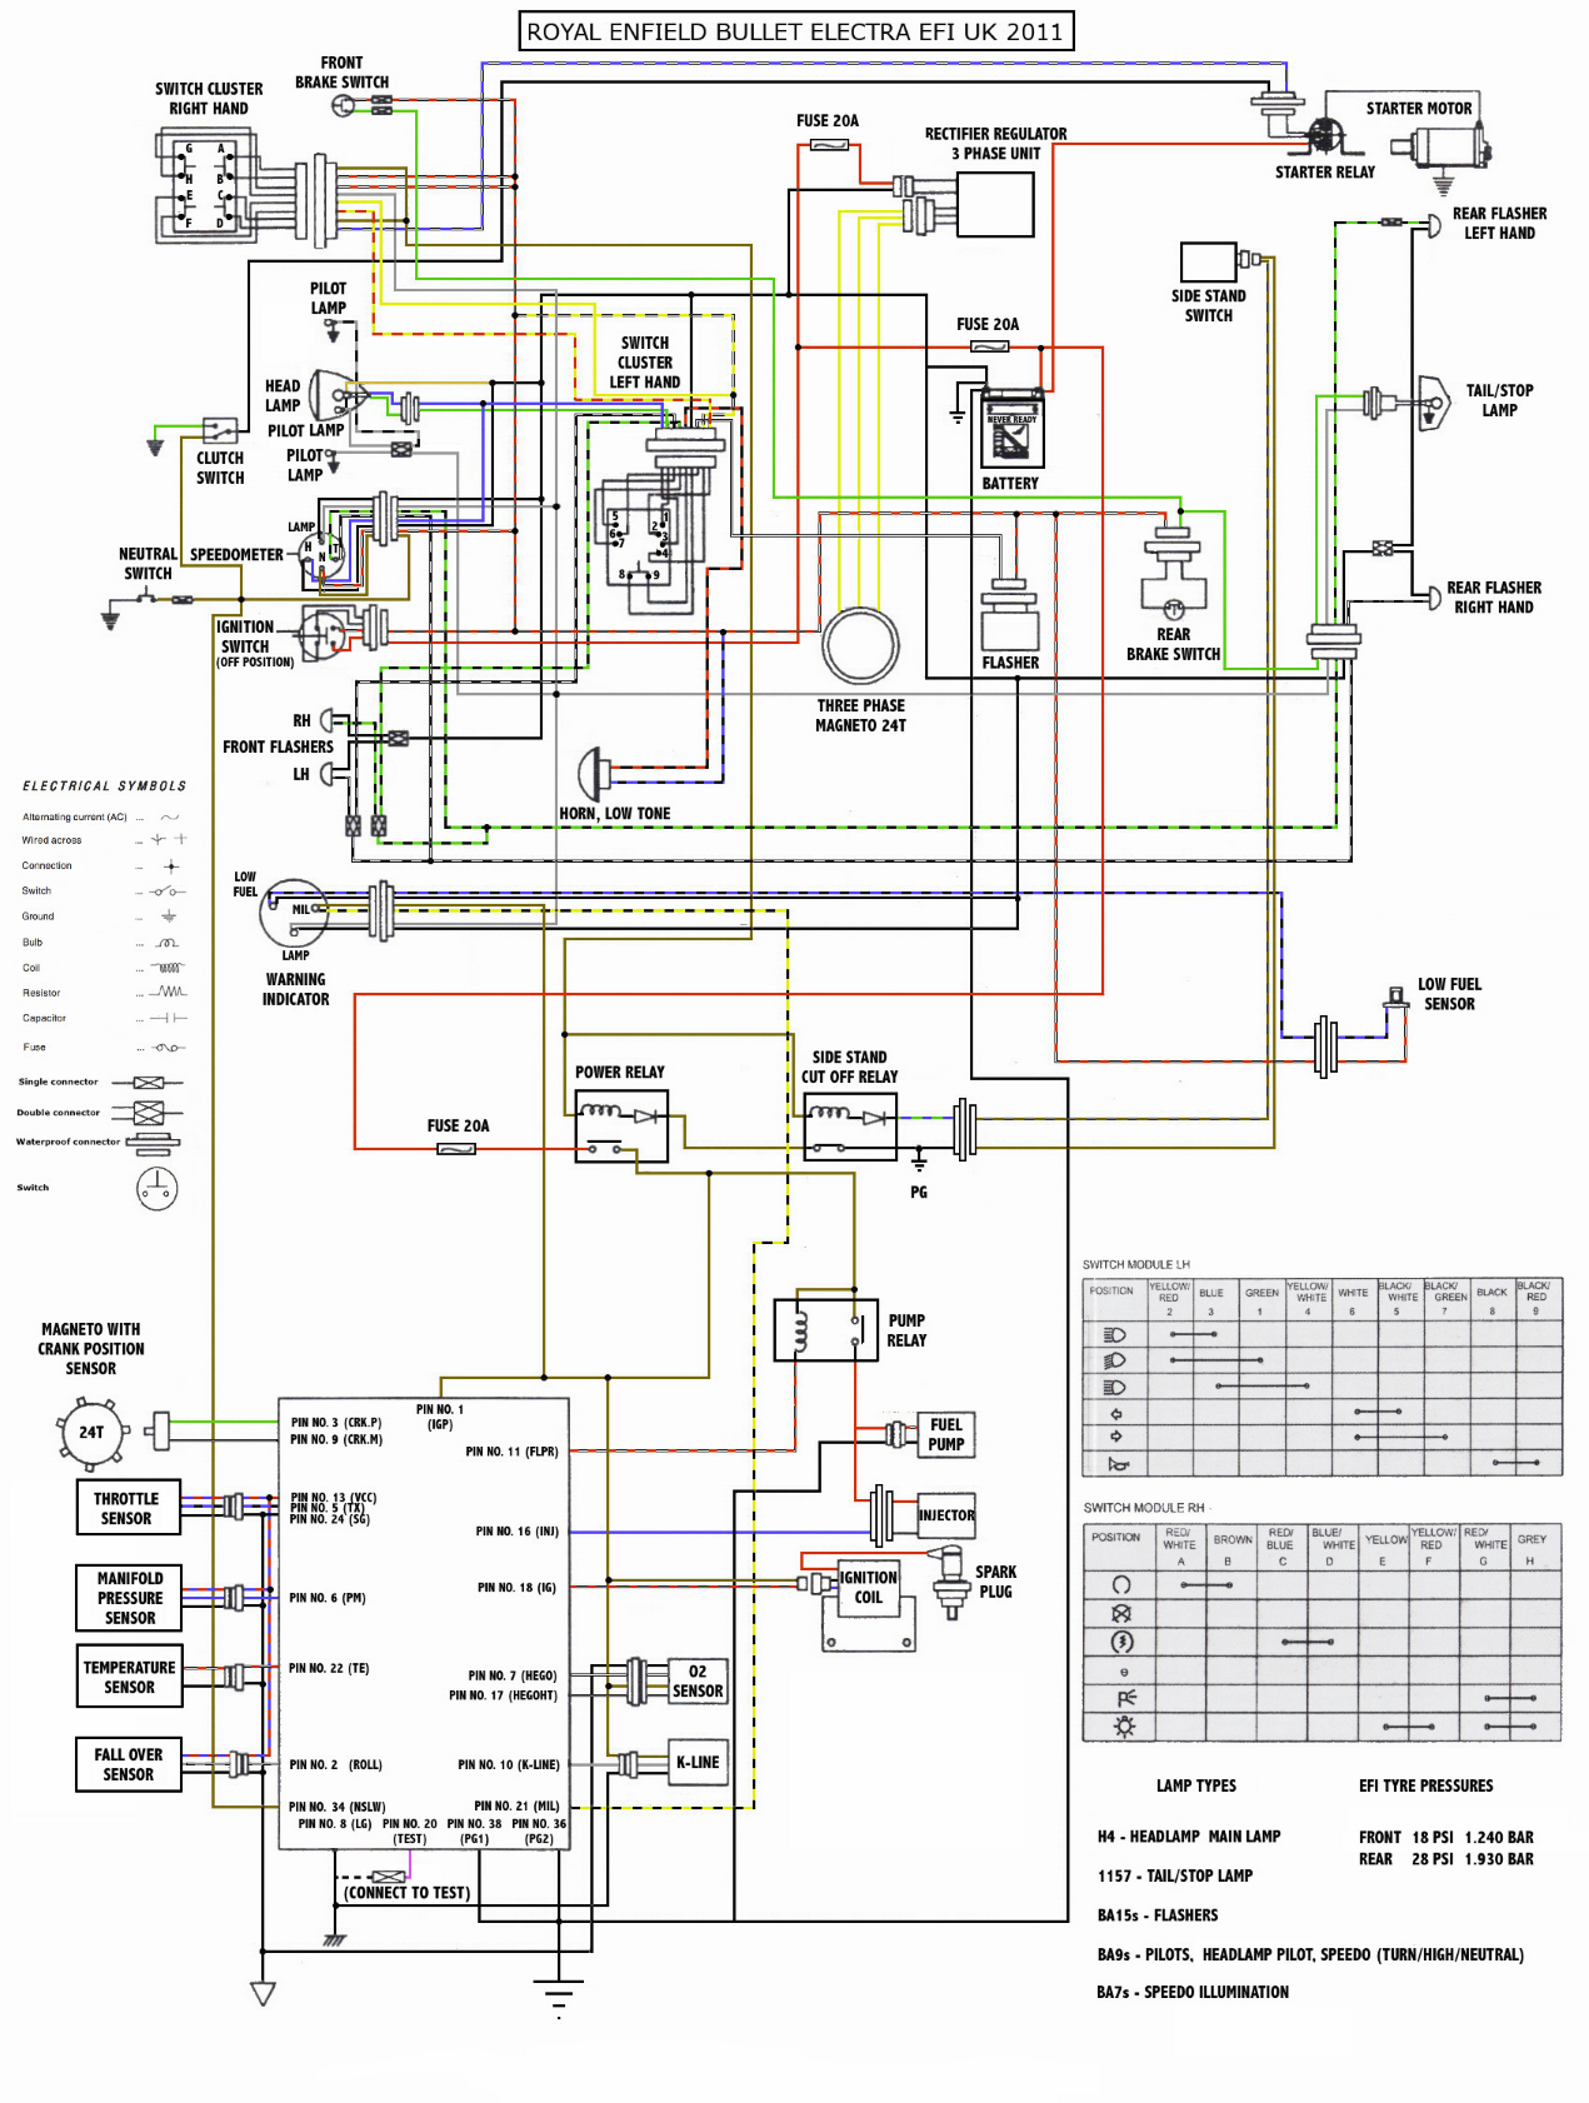 Wiring Diagram For Workshop Free Download Schematic Opinions About Royal Ryder Detailed Schematics Rh Keyplusrubber Com Block Washing